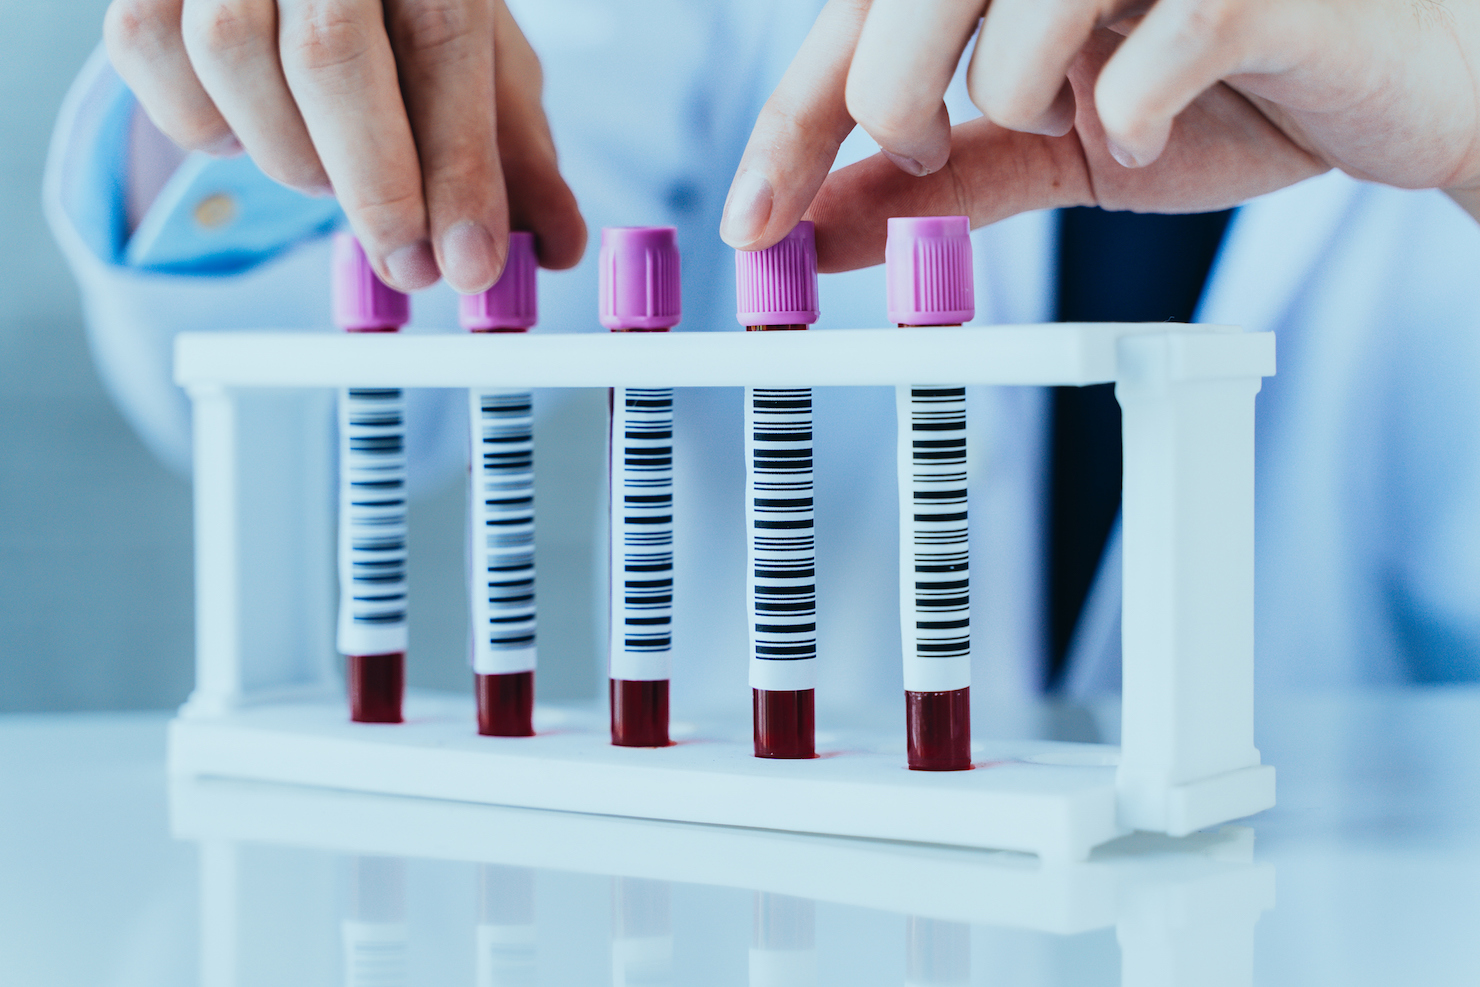 Thrive raises $257M Series B round for registration study of blood test for early cancer detection